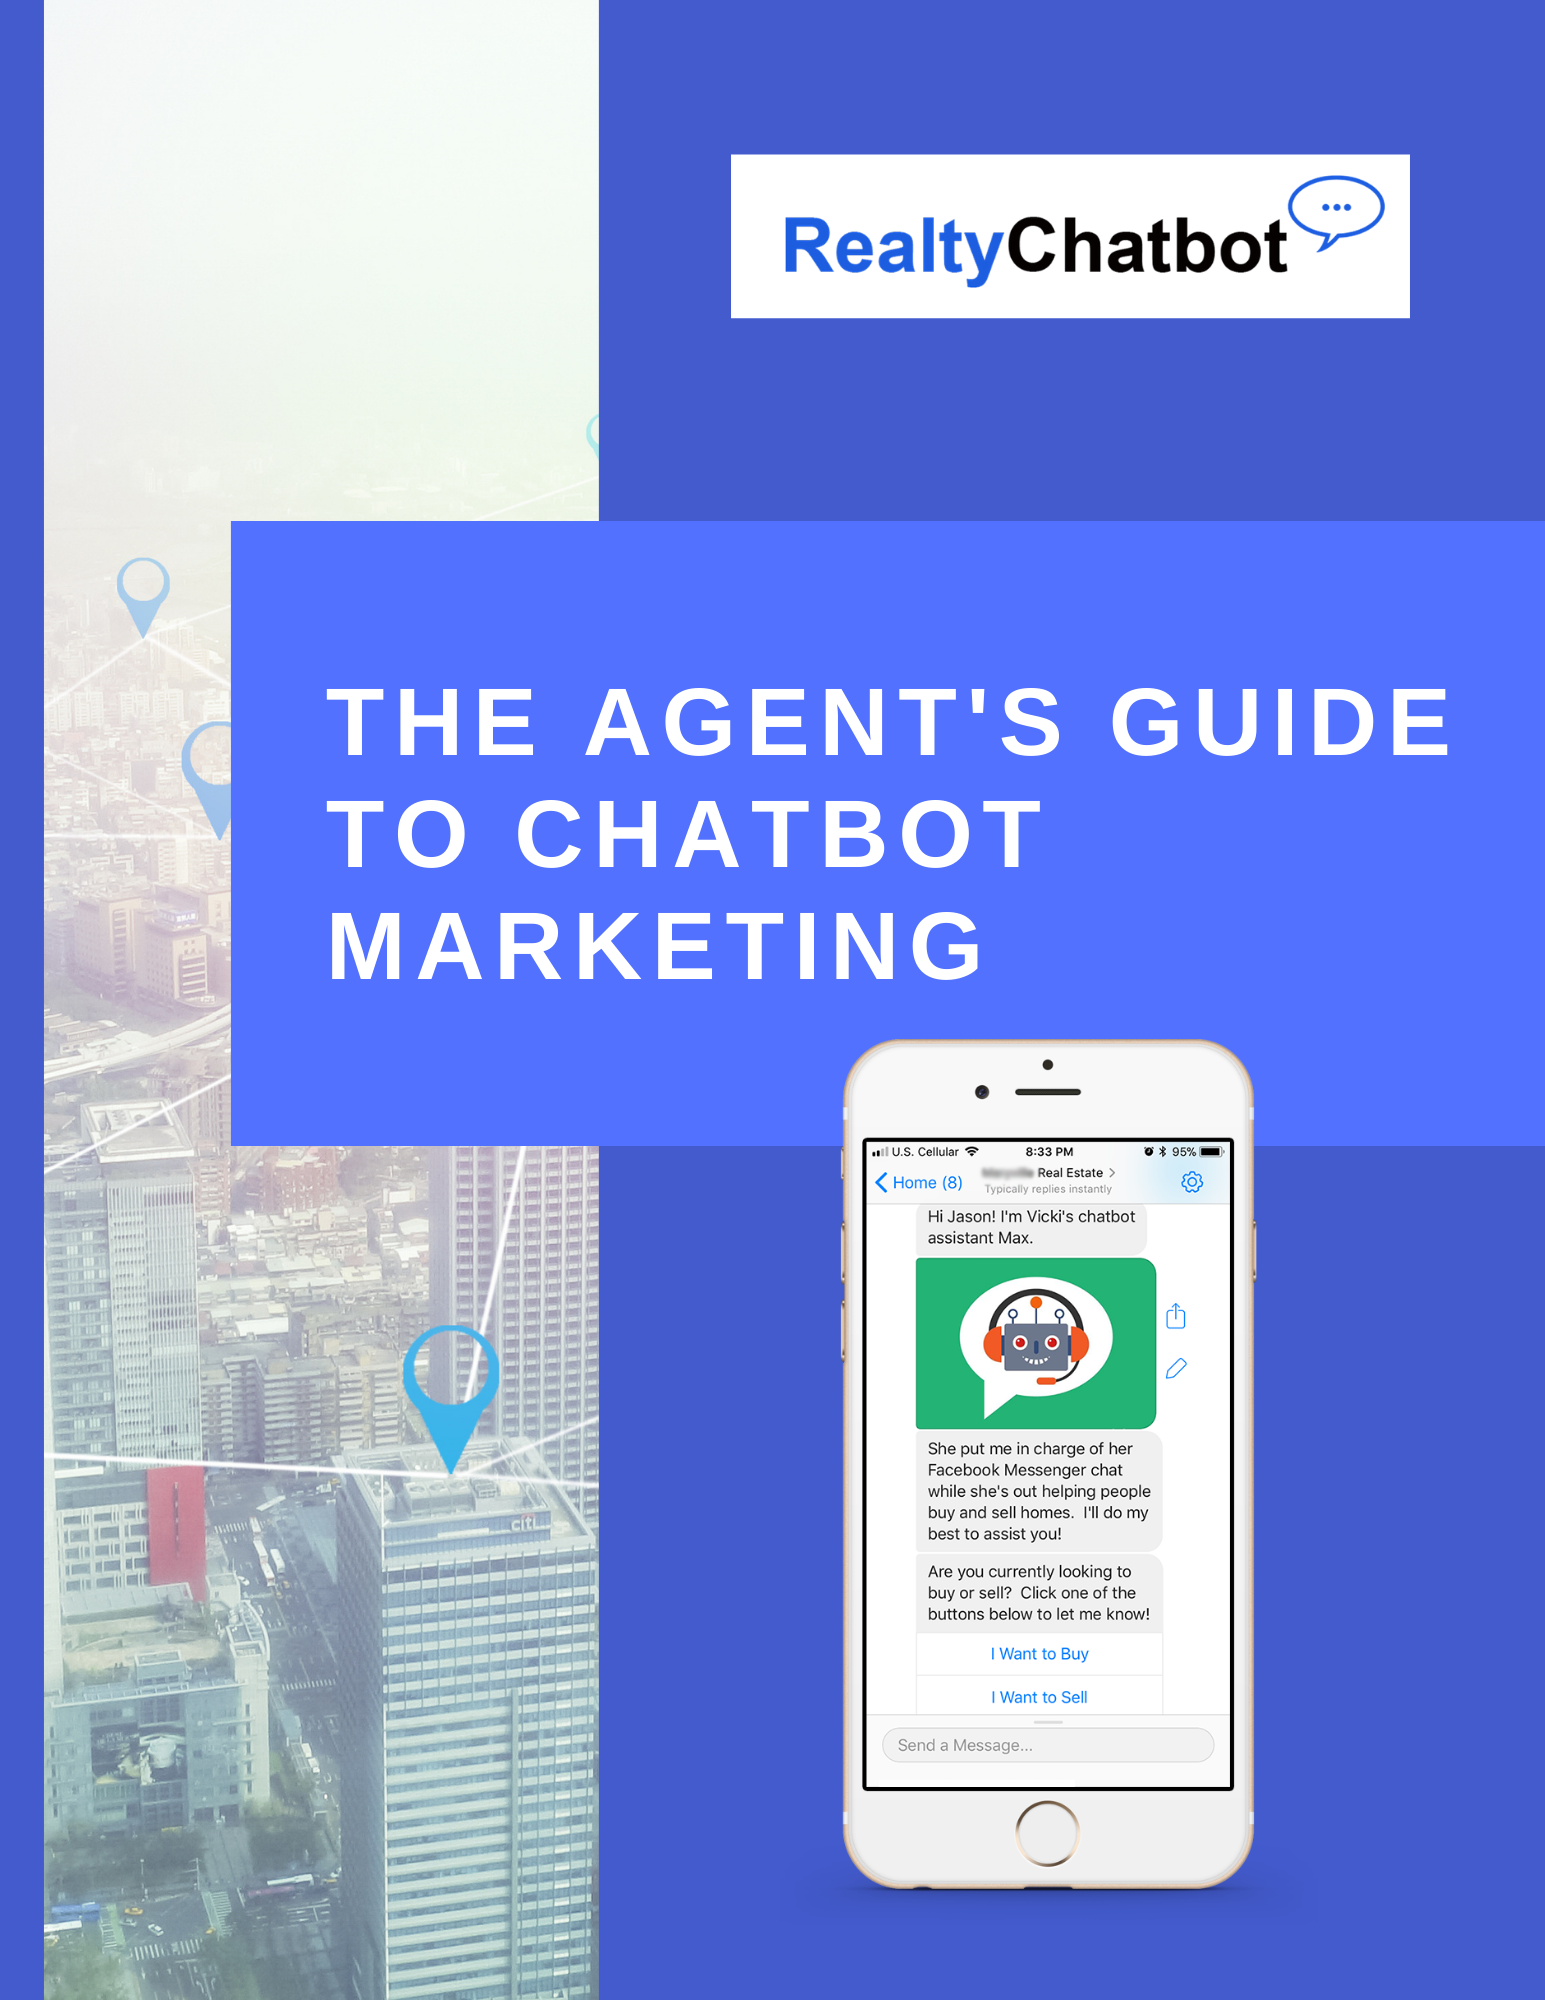 The Agent's Guide to Chatbot Marketing